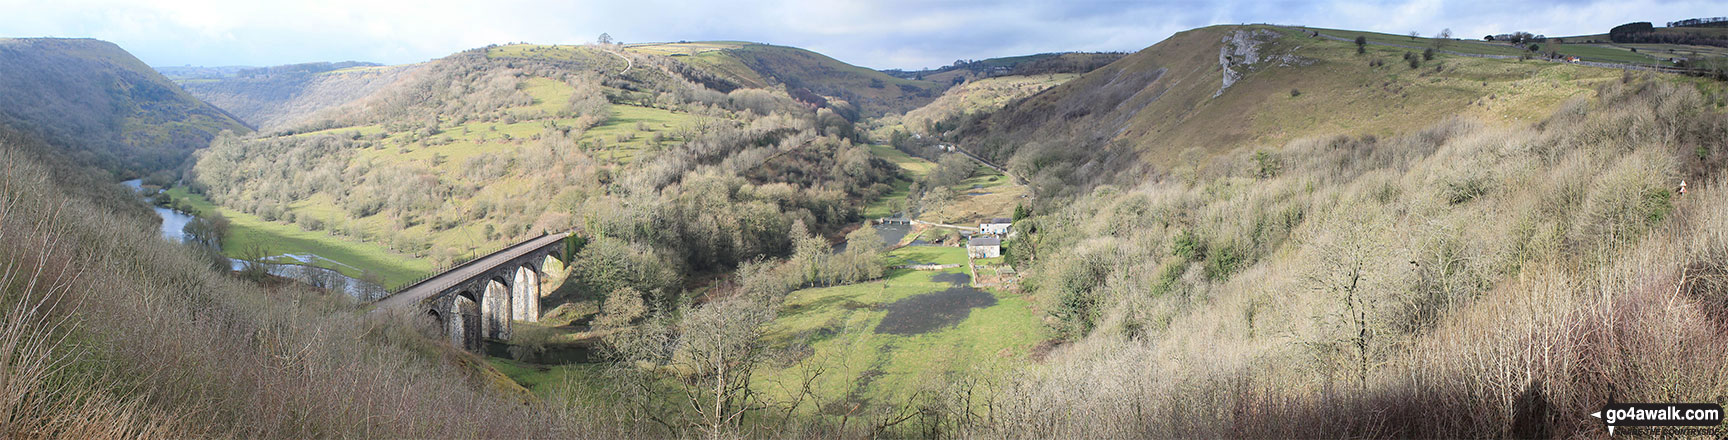 Monsal Head Viaduct and Monsal Dale from Monsal Head